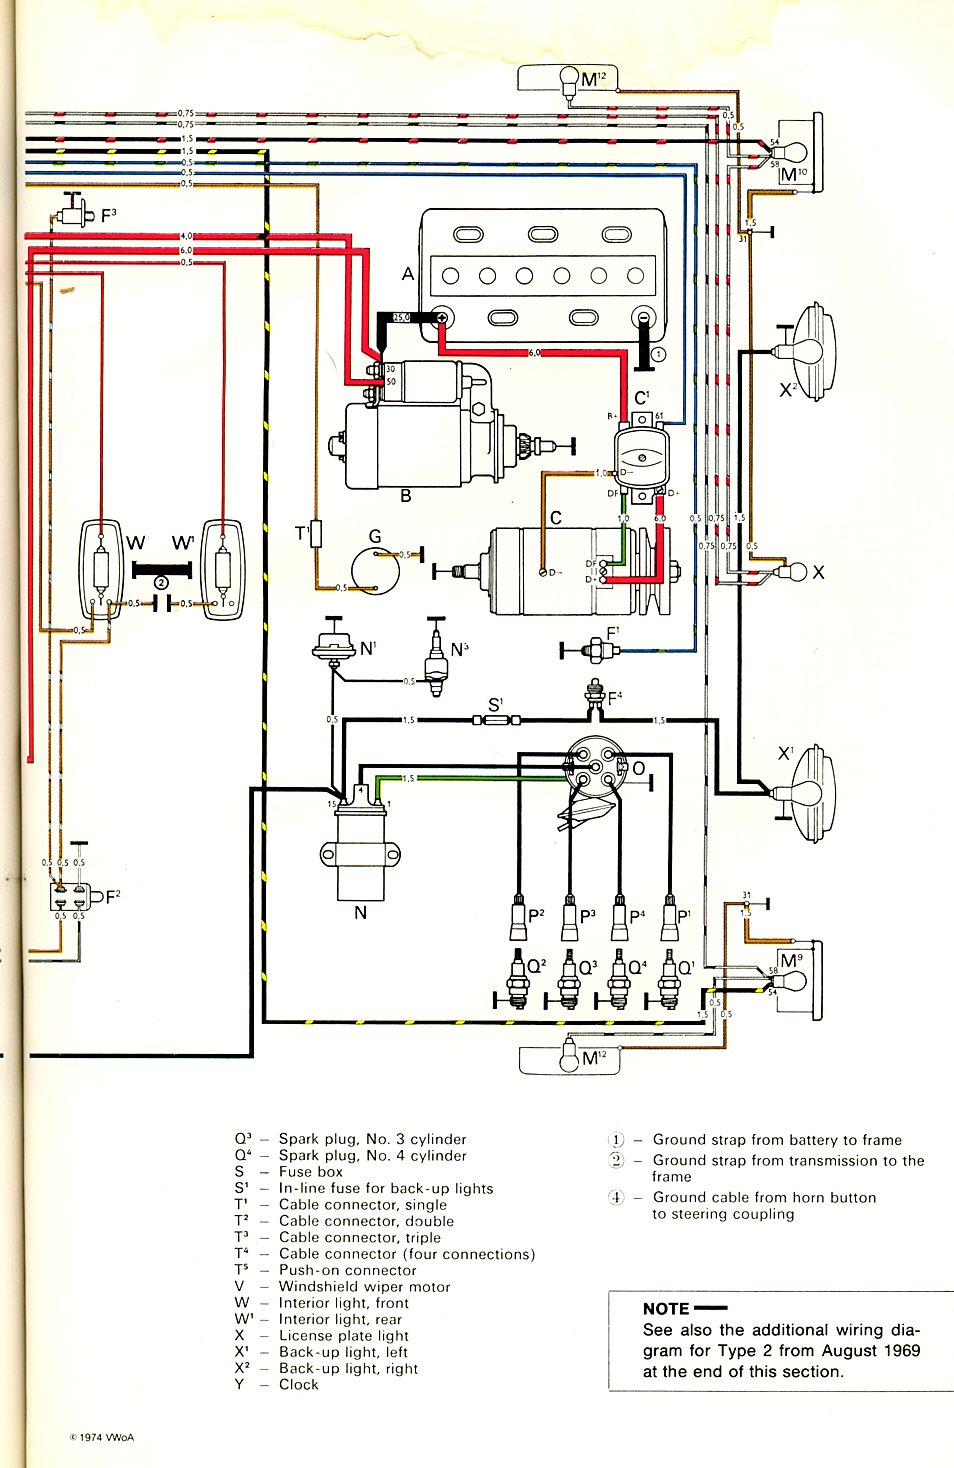 Type 2 Wiring Diagrams Motor Resistor Replacement Further Ford Wiper Diagram